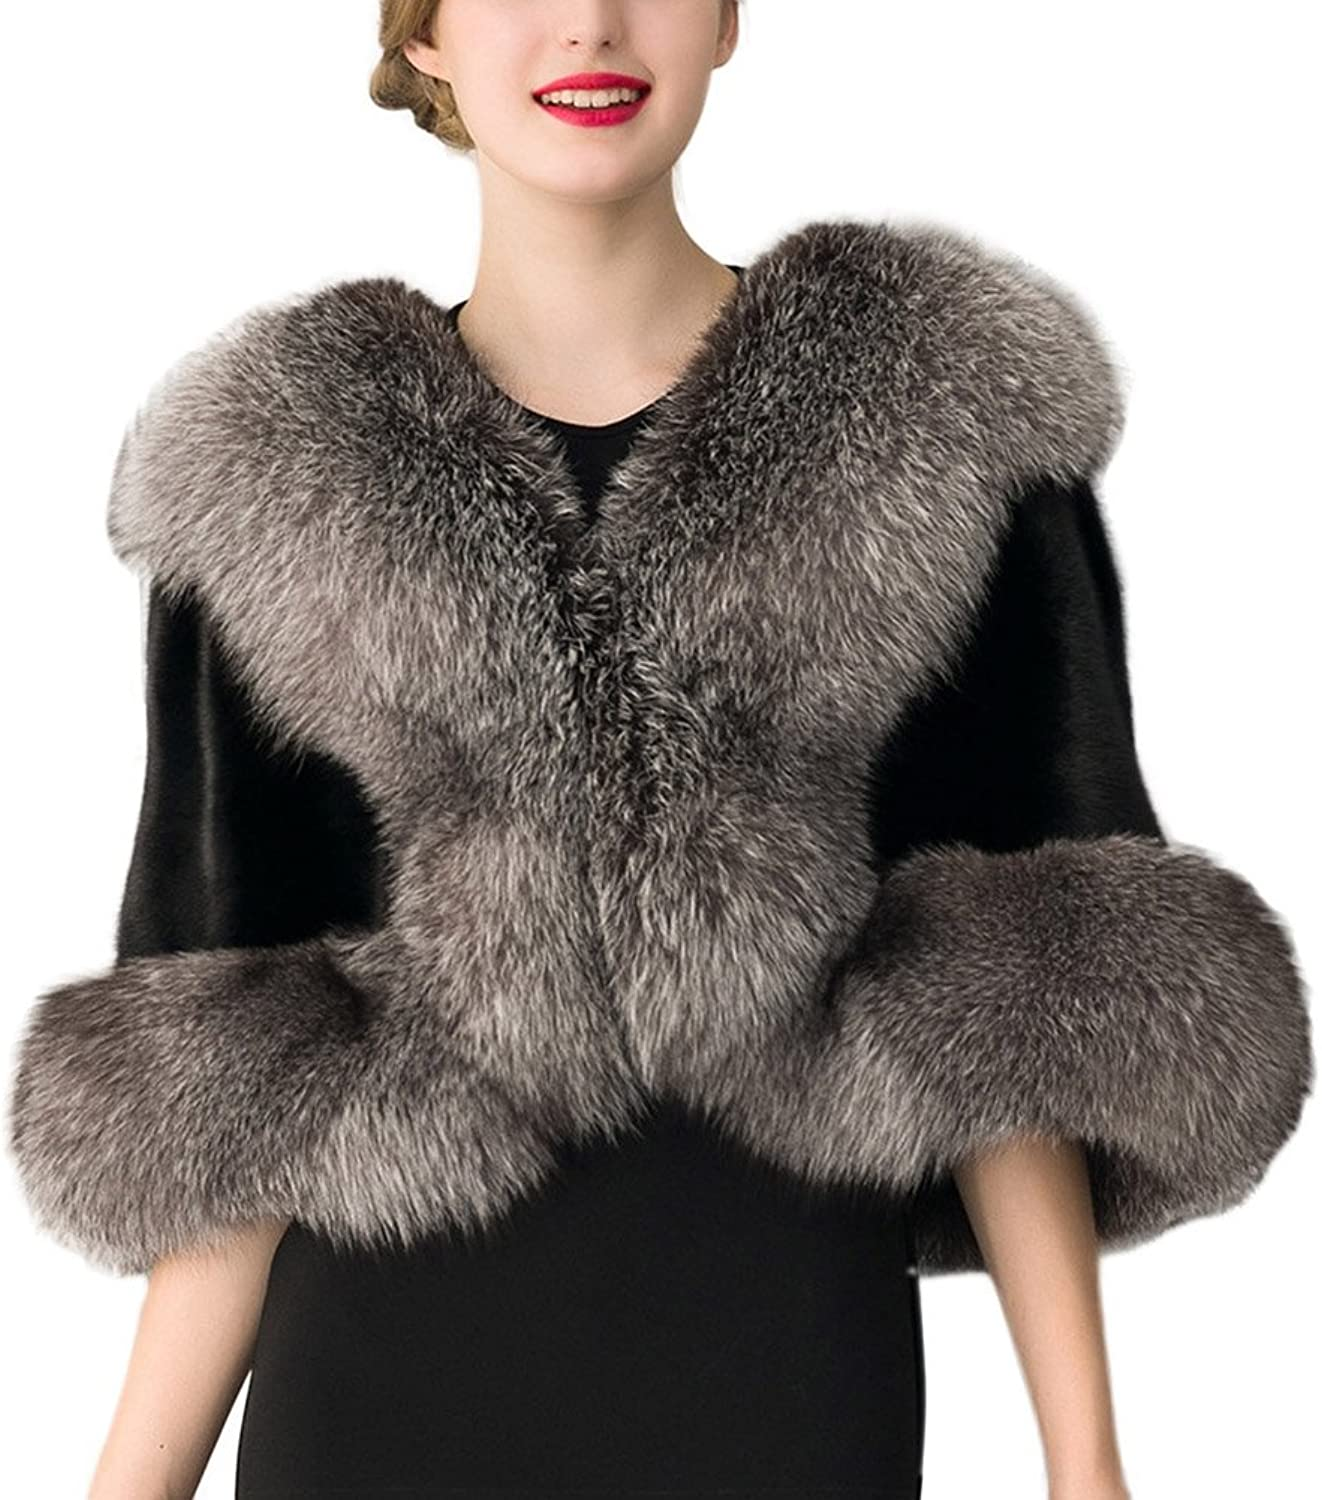 Women Faux Fur Shawl Wrap Stole Shrug Bridal Party Wedding Cover Up